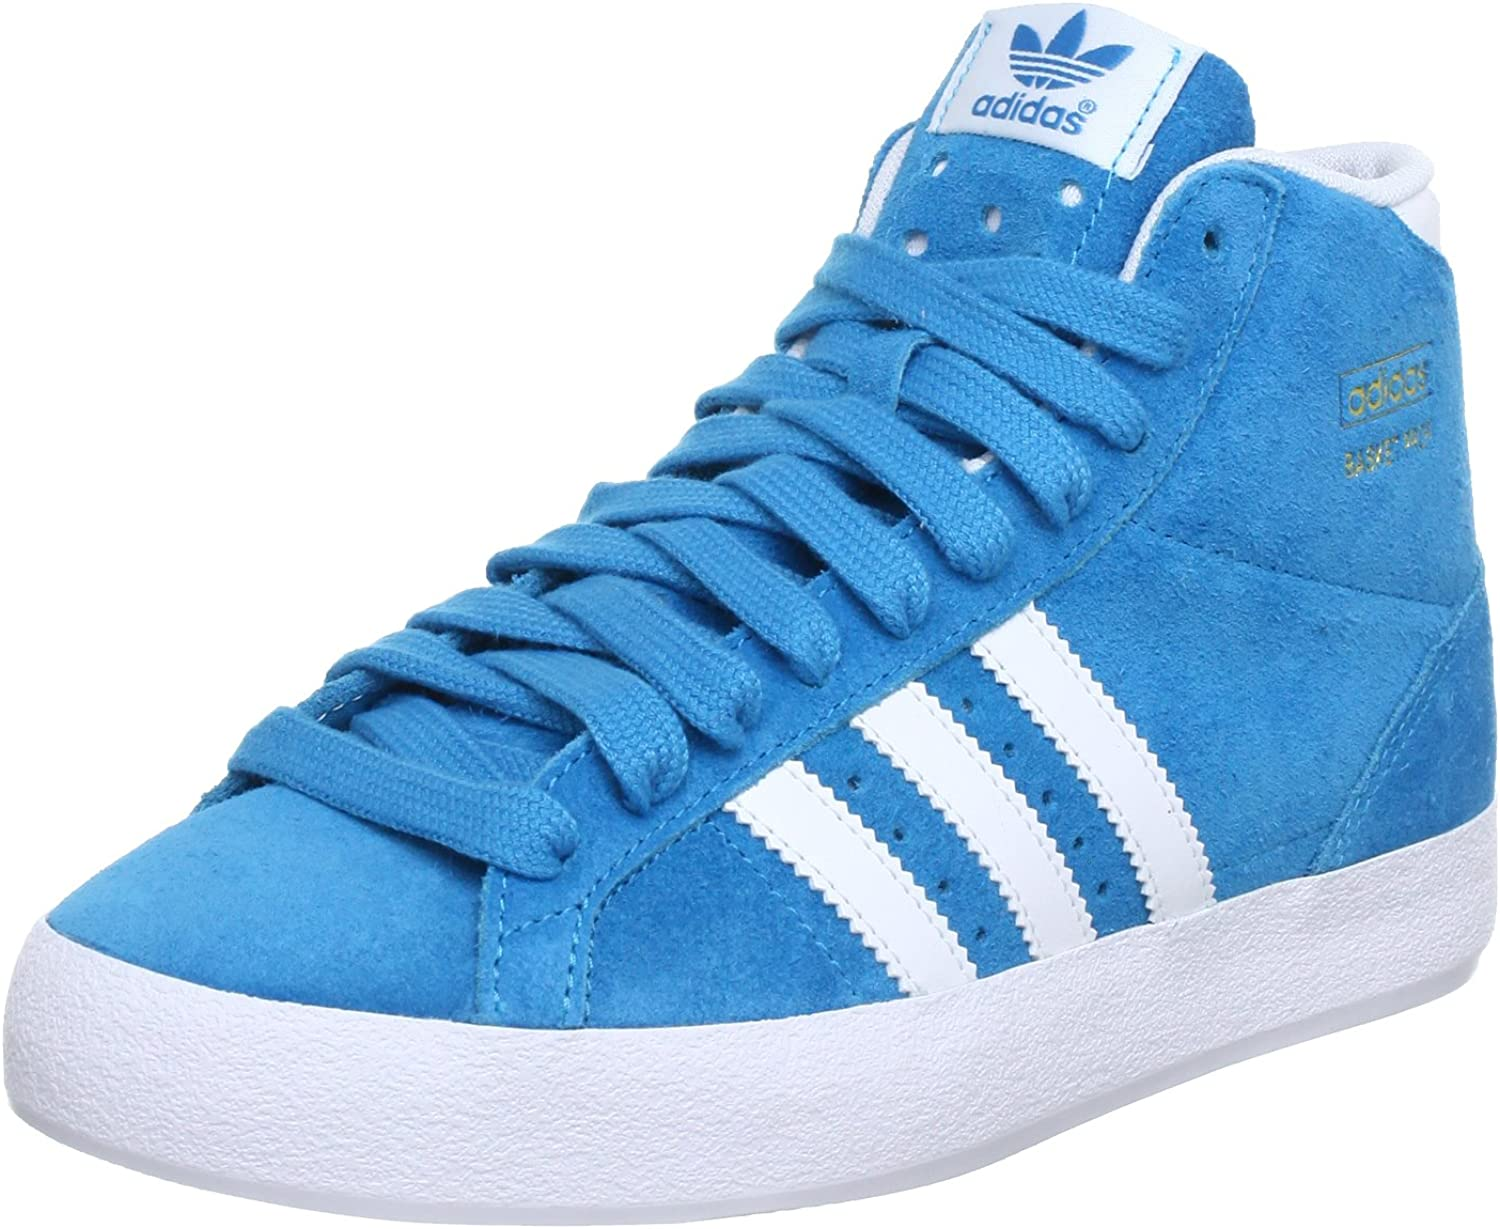 Adidas Basket Profi W, Women's Low-Top Sneakers